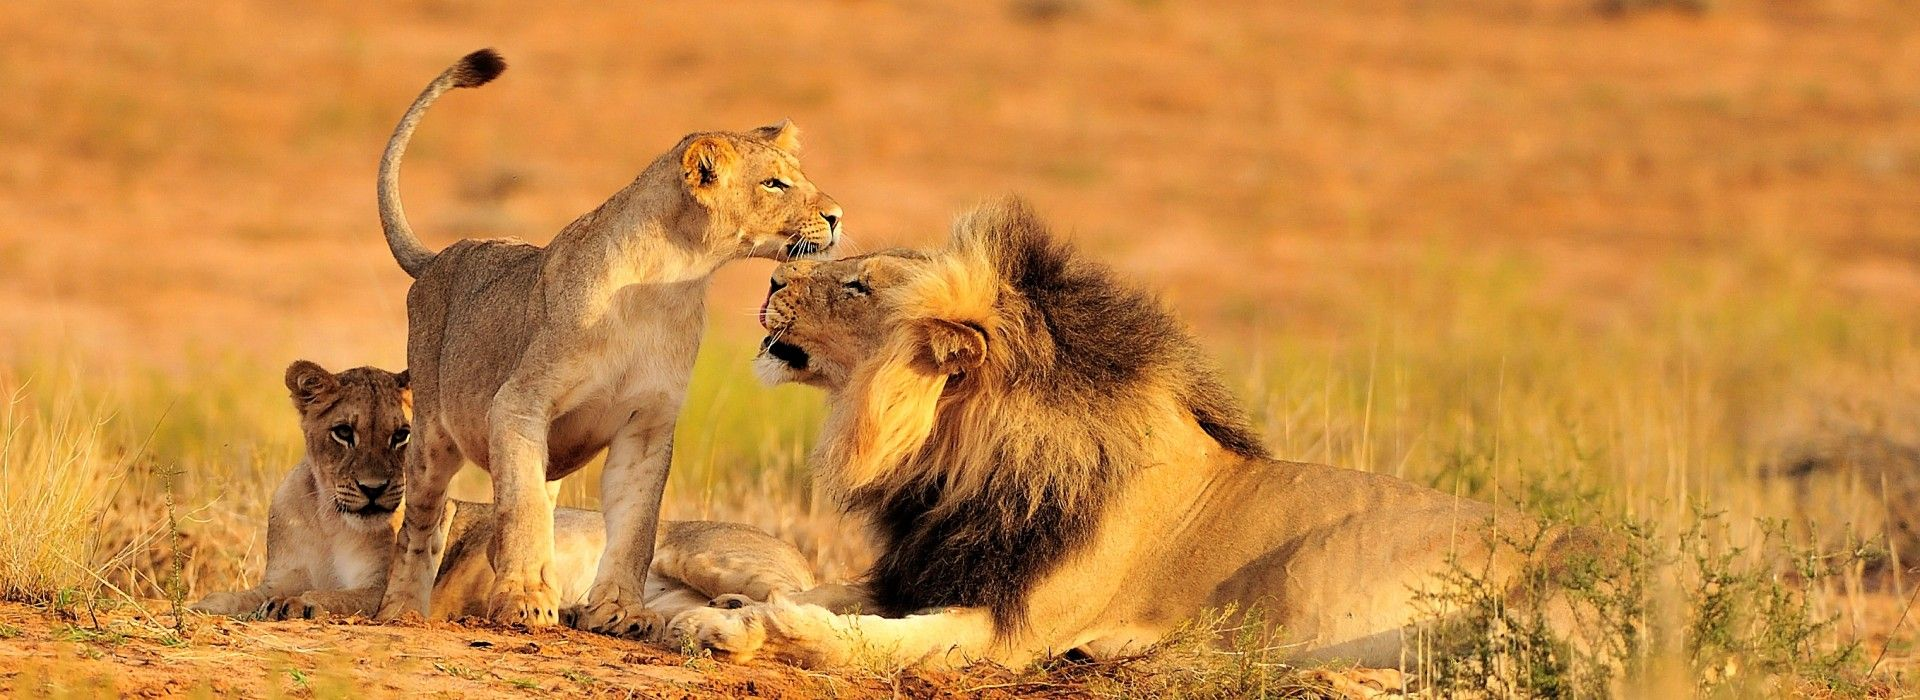 South Africa Holidays and South Africa Tours